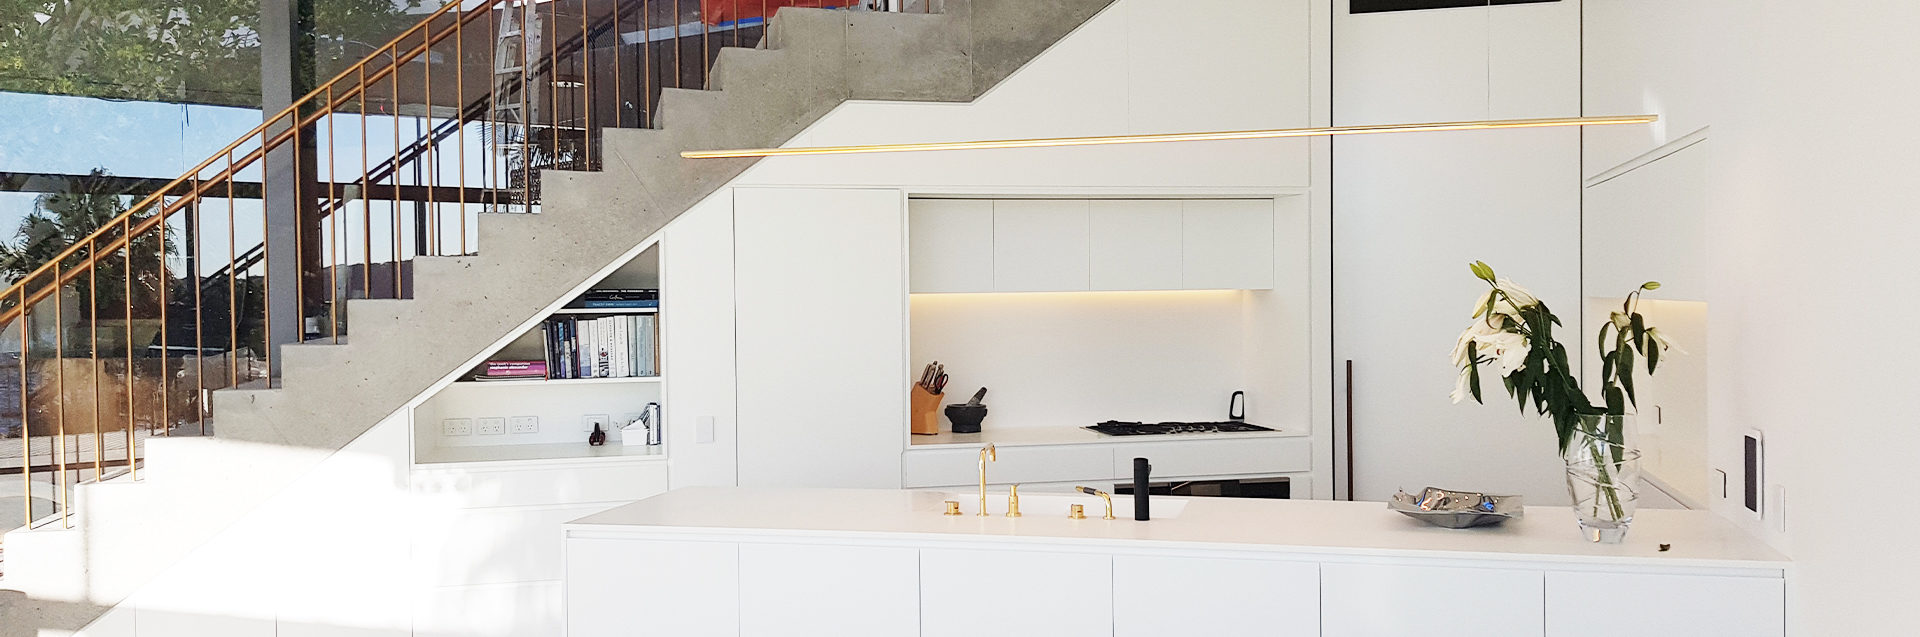 Scarelli Joinery Project Vaucluse Residence -Featured Image